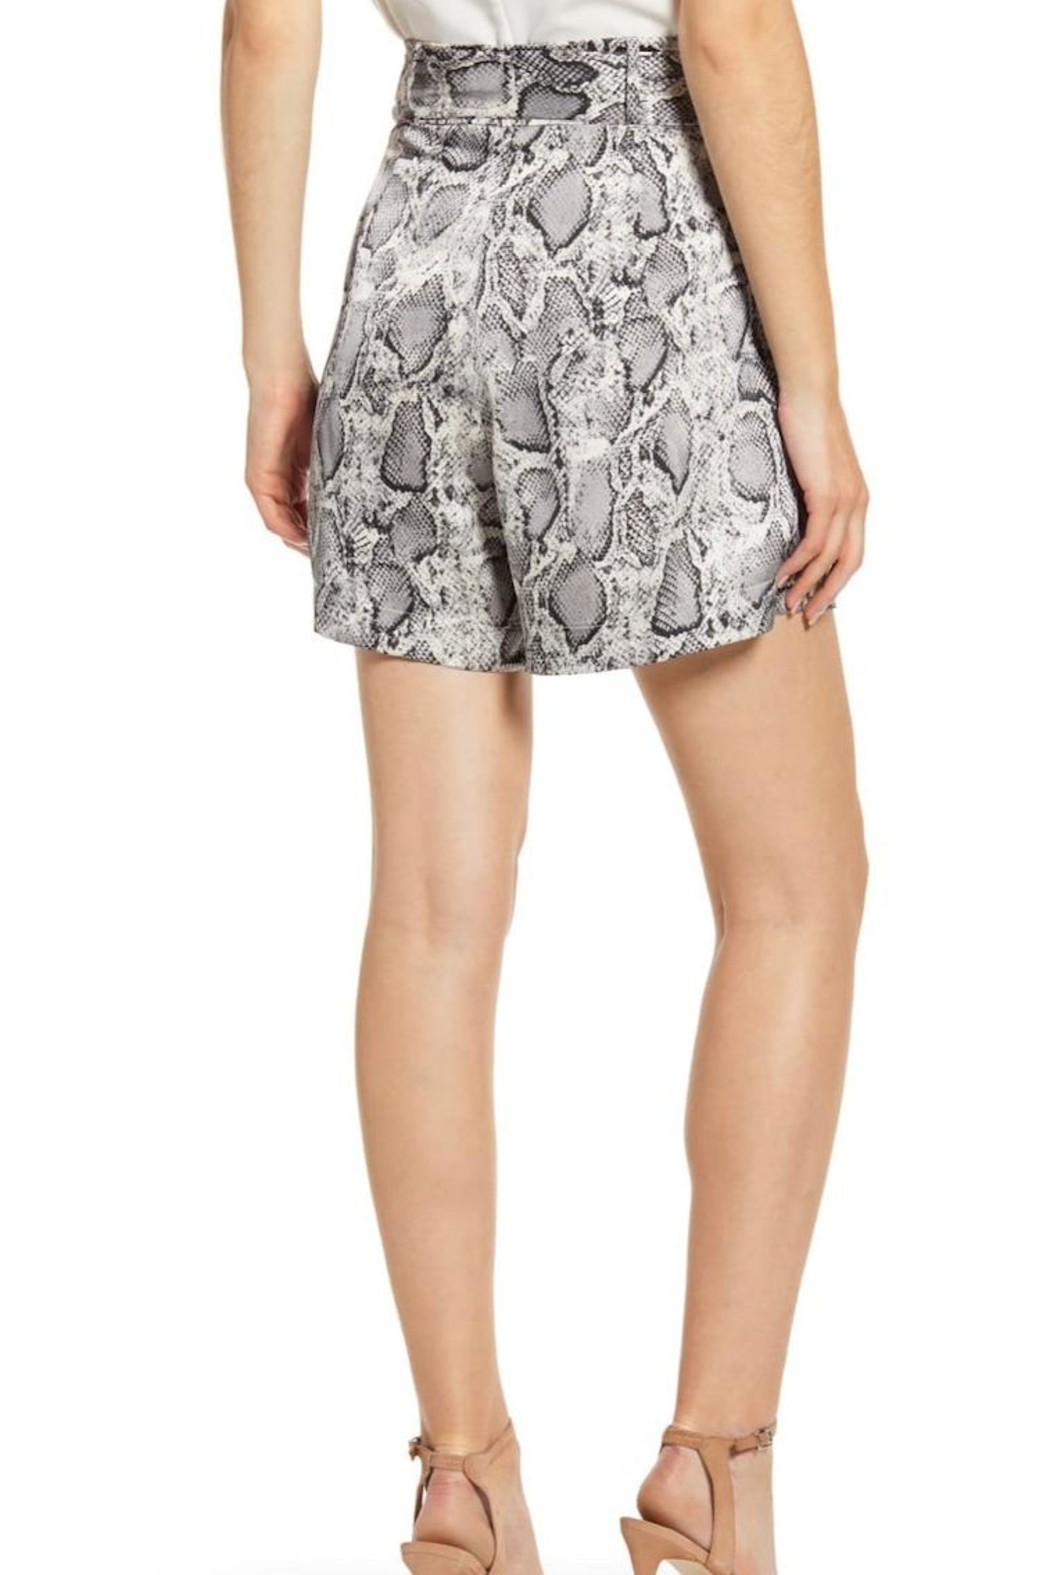 Bishop + Young Snake Print Shorts - Front Full Image